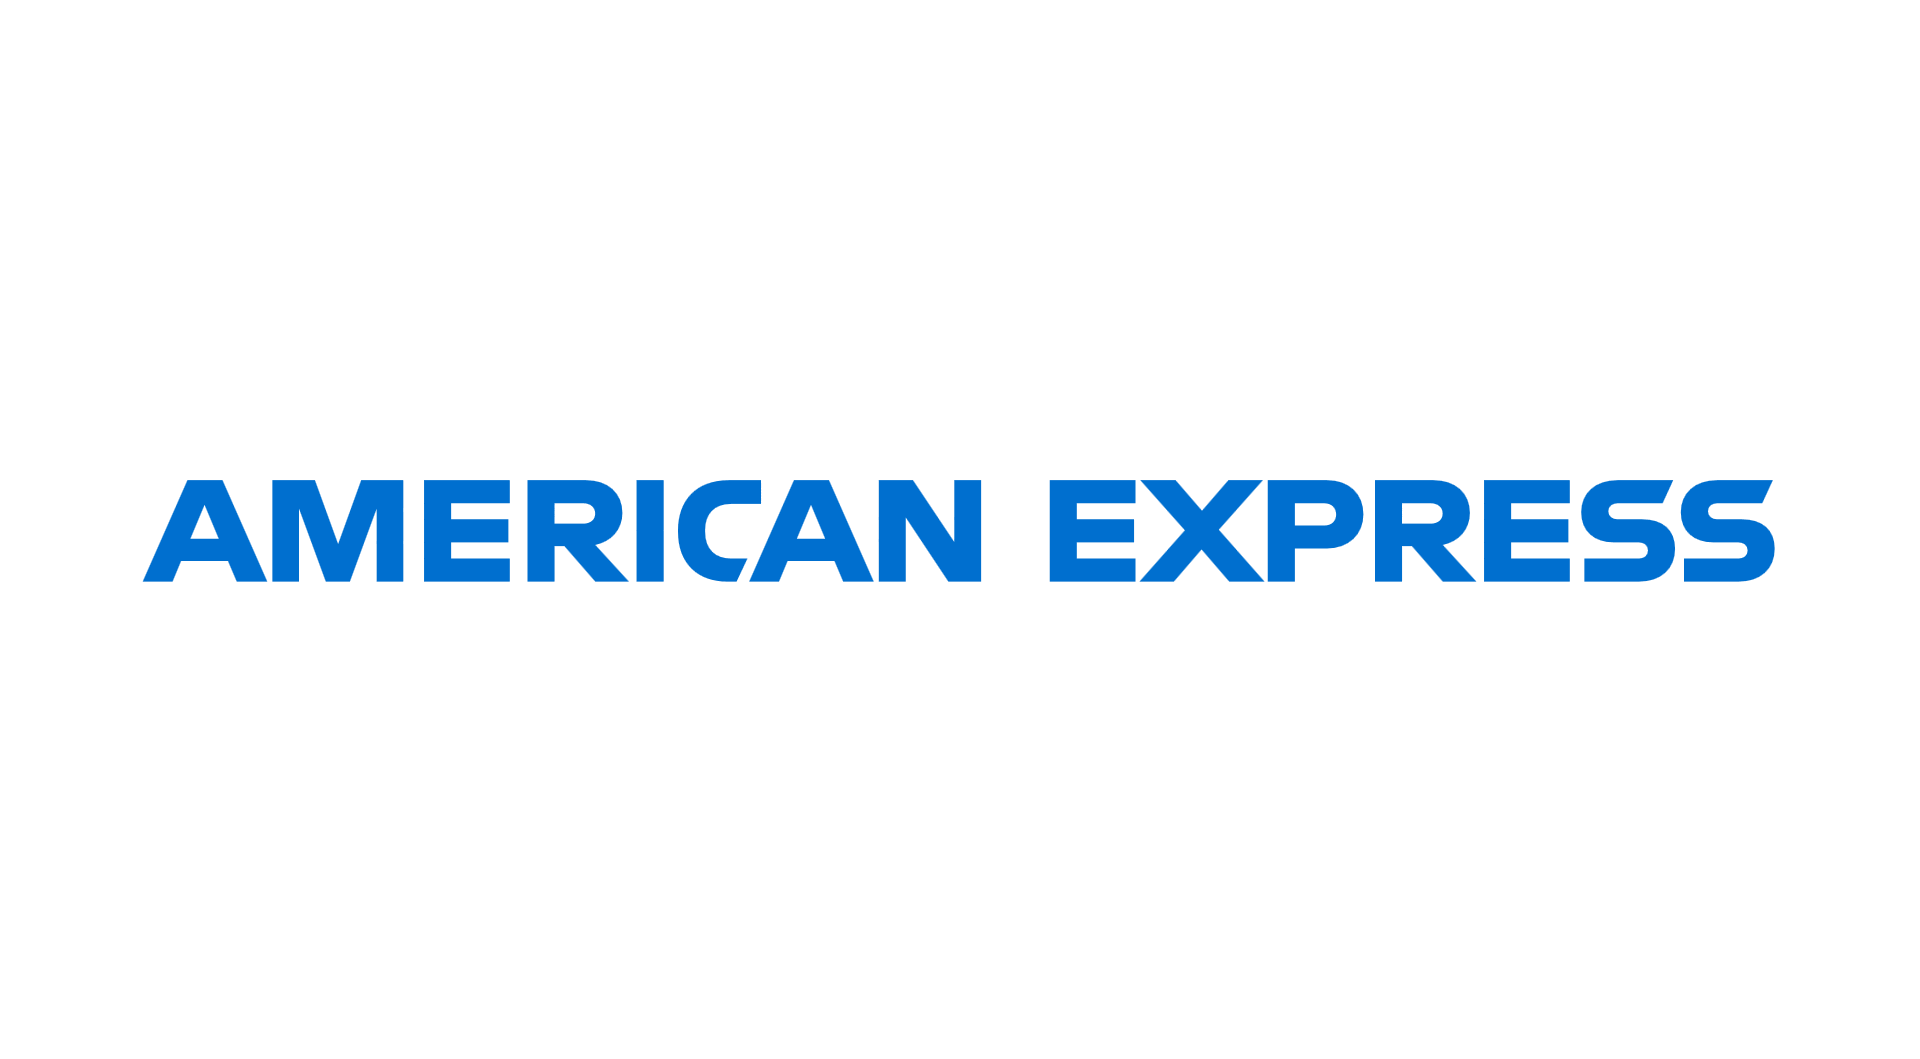 American-Express-Logotype-Single-Line (1)